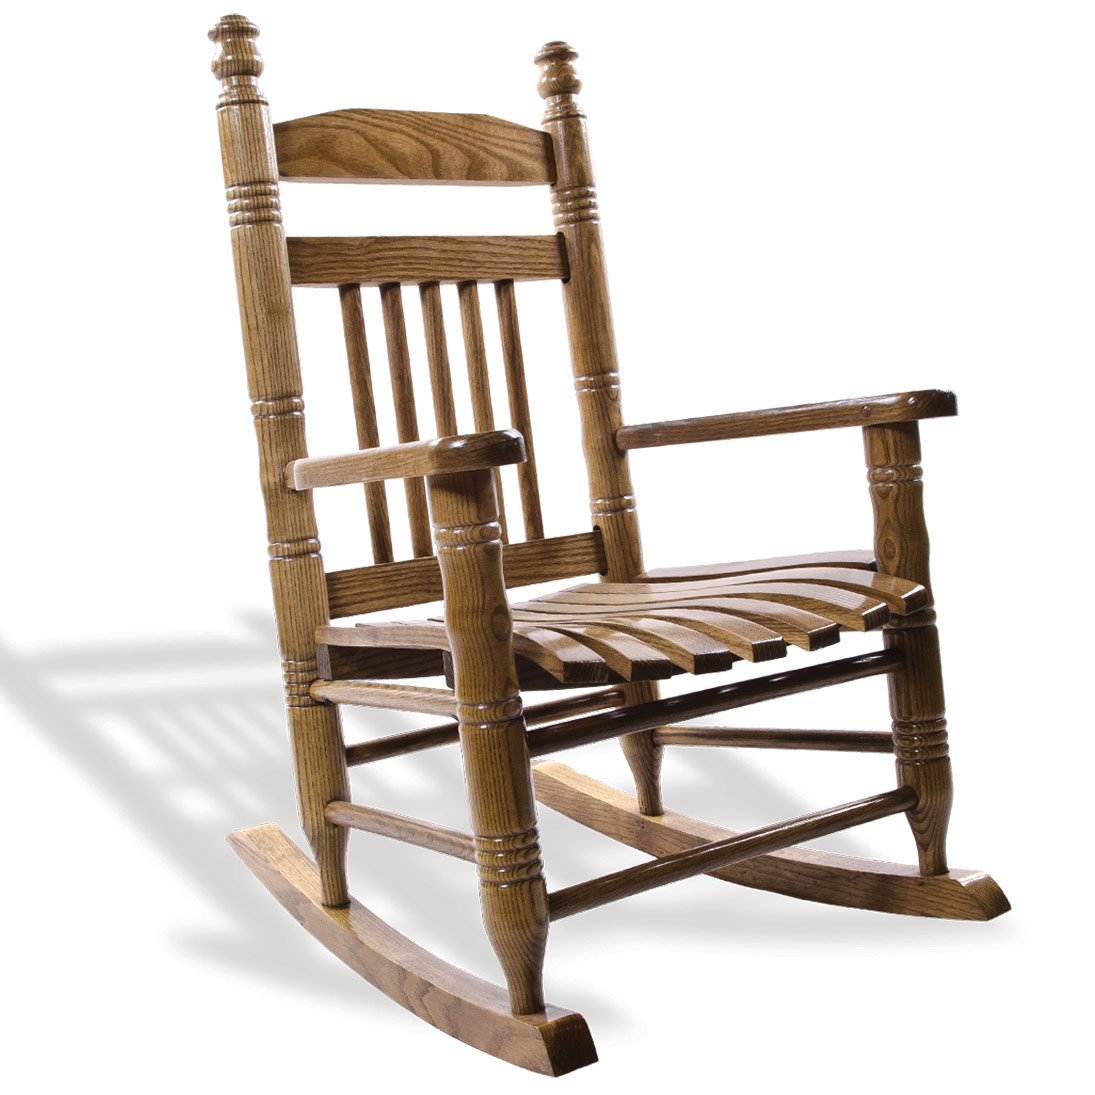 cracker barrel rocking chair reviews office furniture table and chairs indoor wooden old country store slat child hardwood